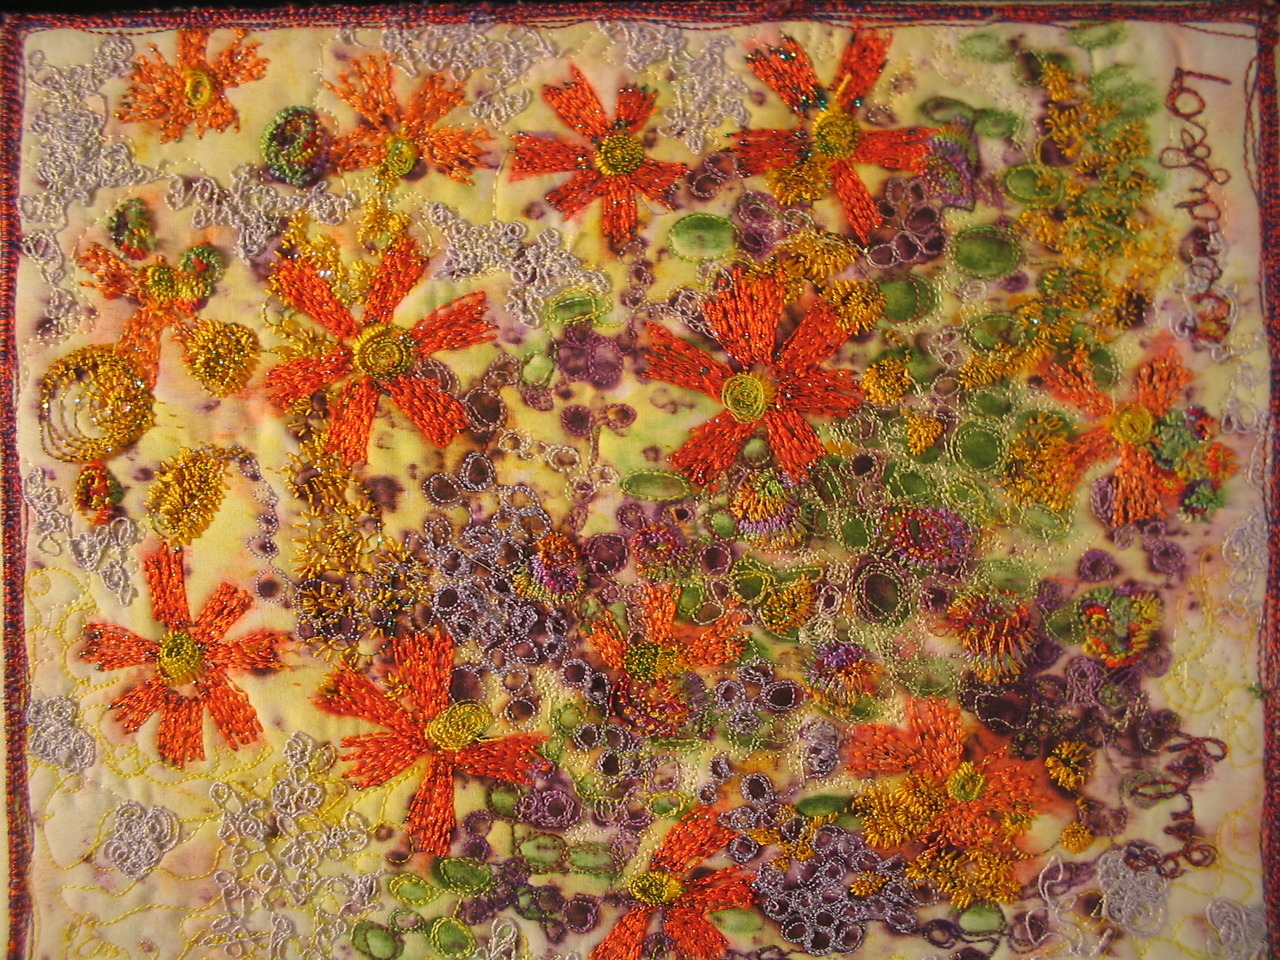 July by Threadborne The little orange flowers with purple buds are free machine embroidered  on a background of melted wax crayons.